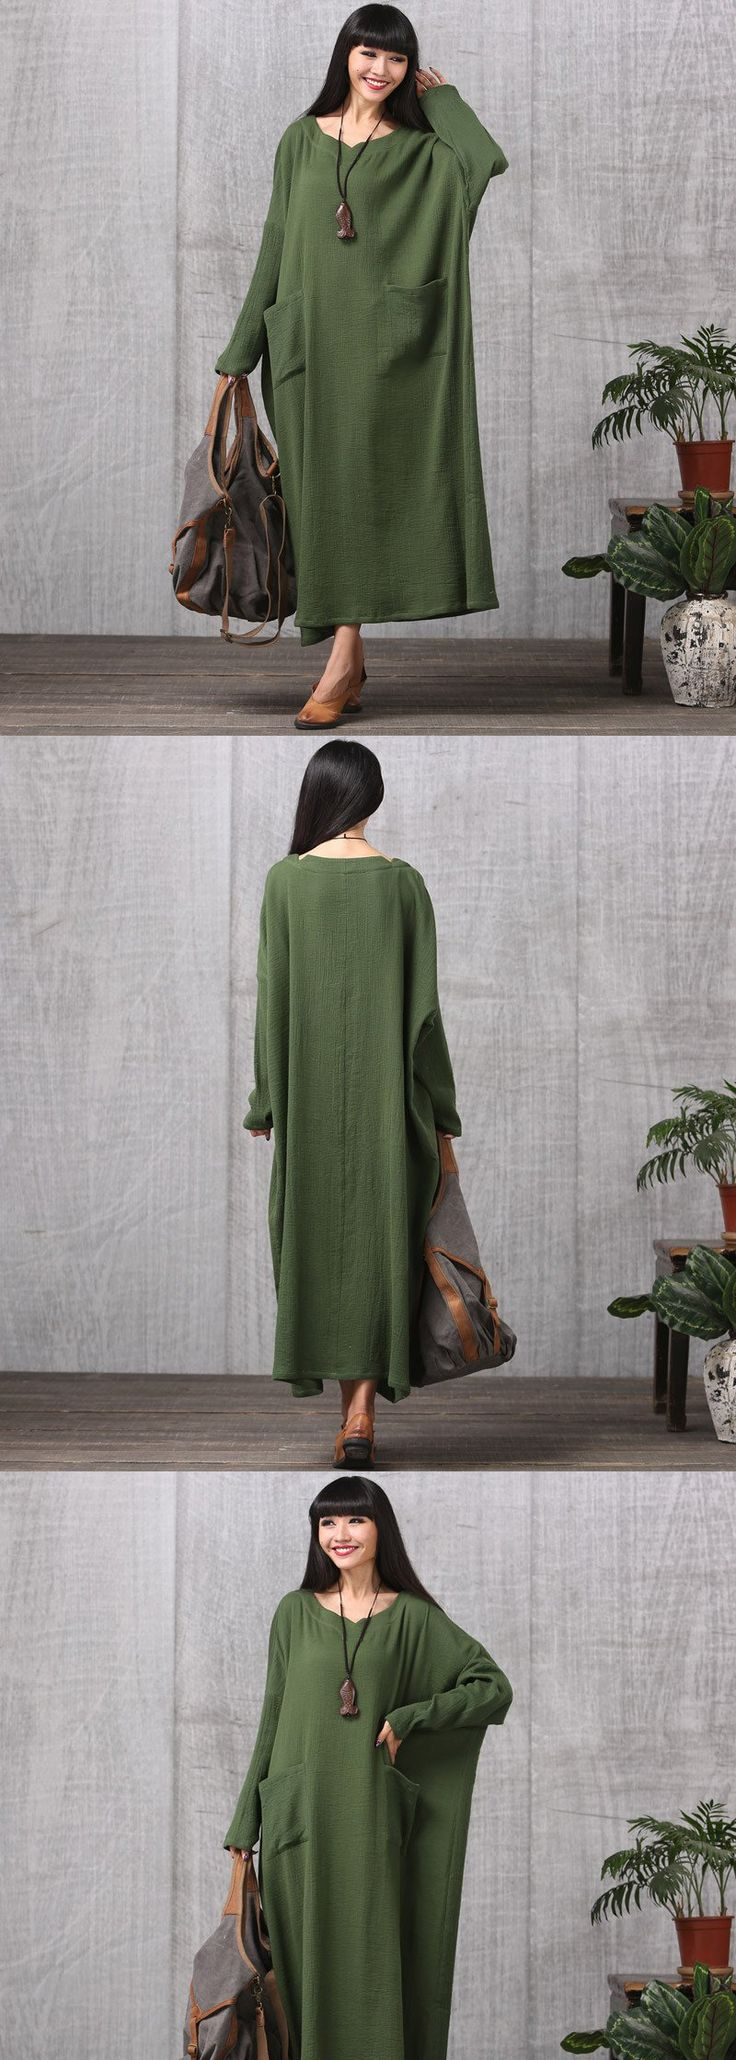 Plus Size Cotton Linen Casual Long Sleeve Autumn Dress $79.00